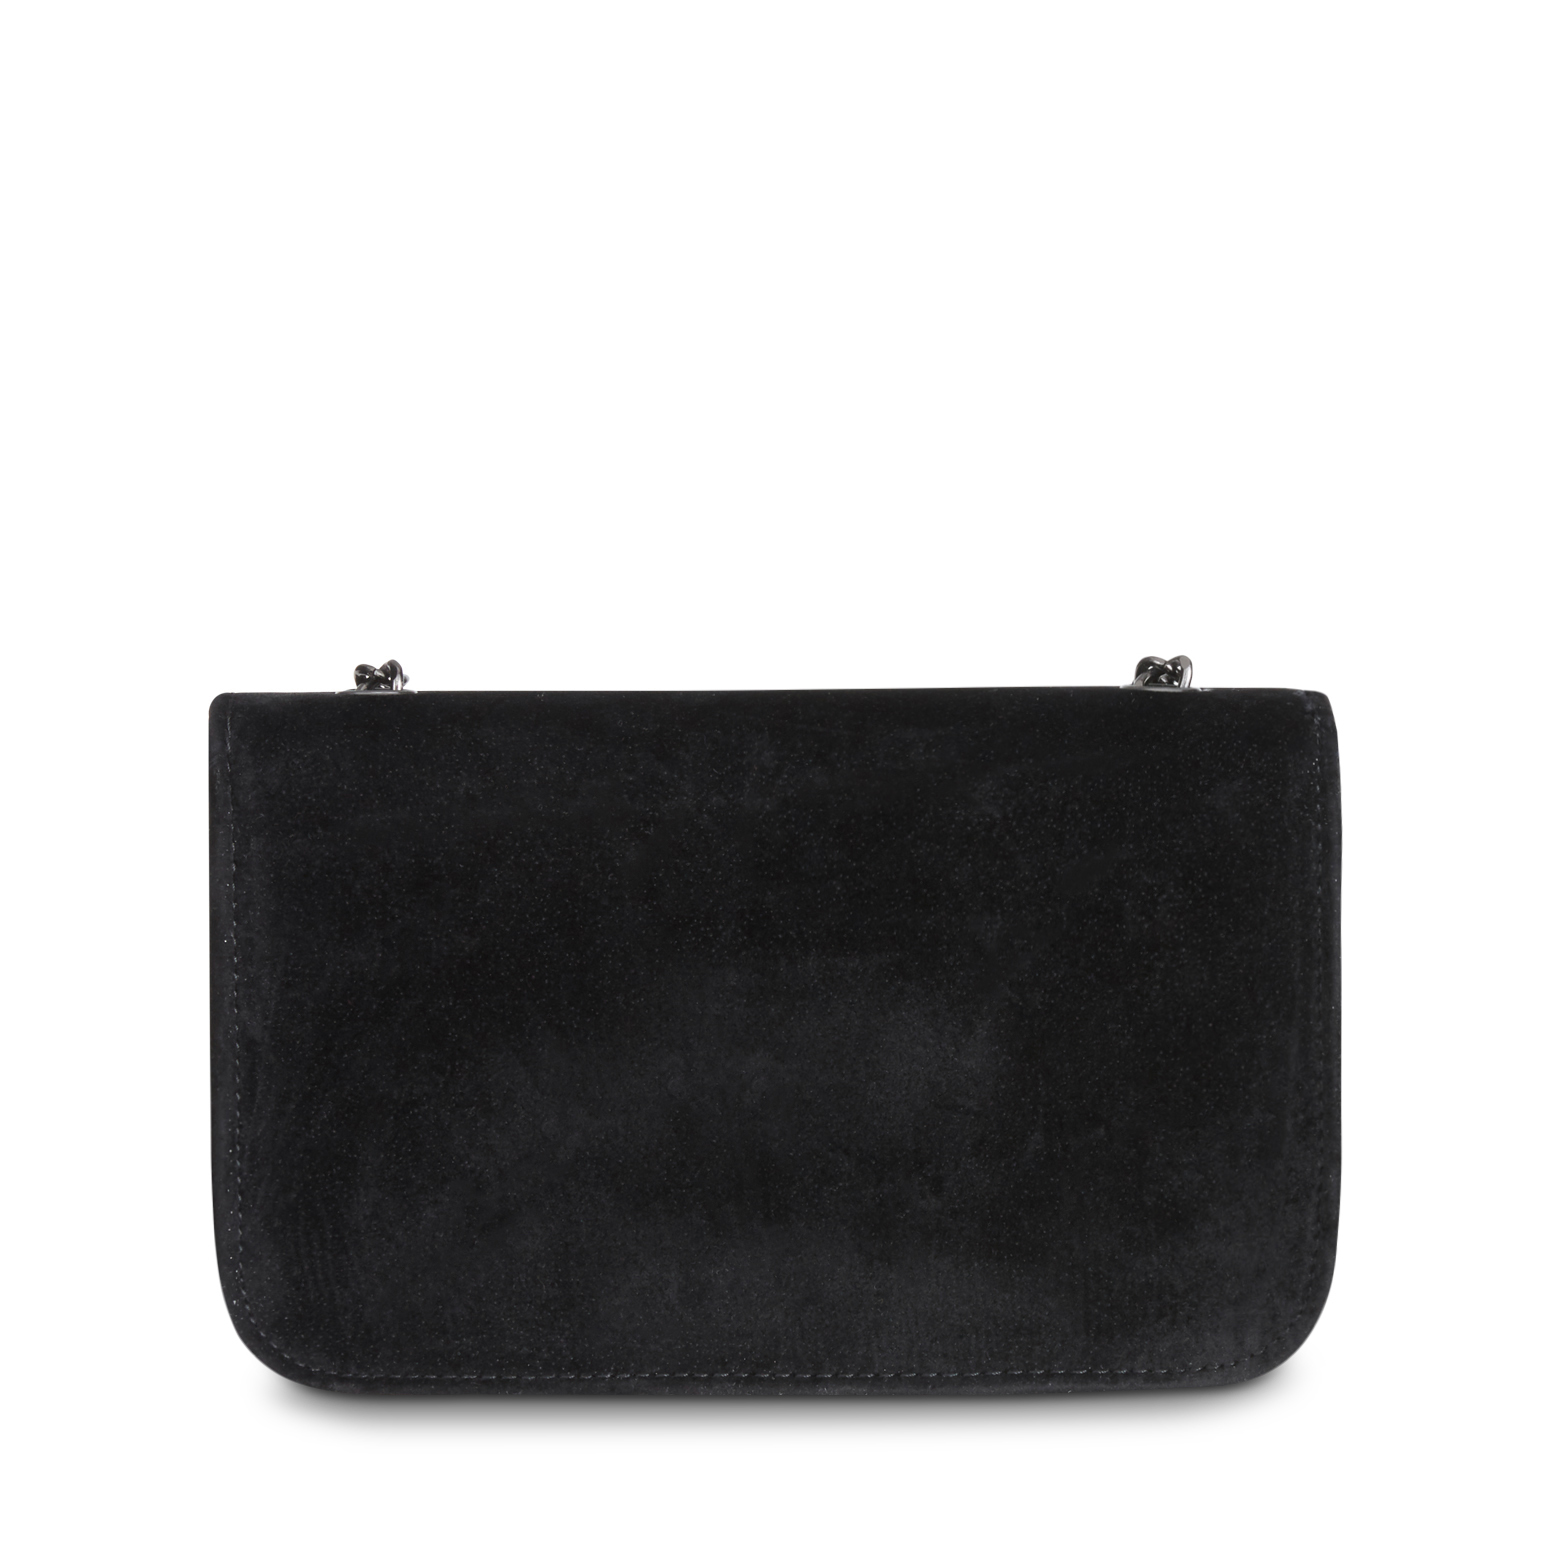 Satchel - black, BLACK, hi-res